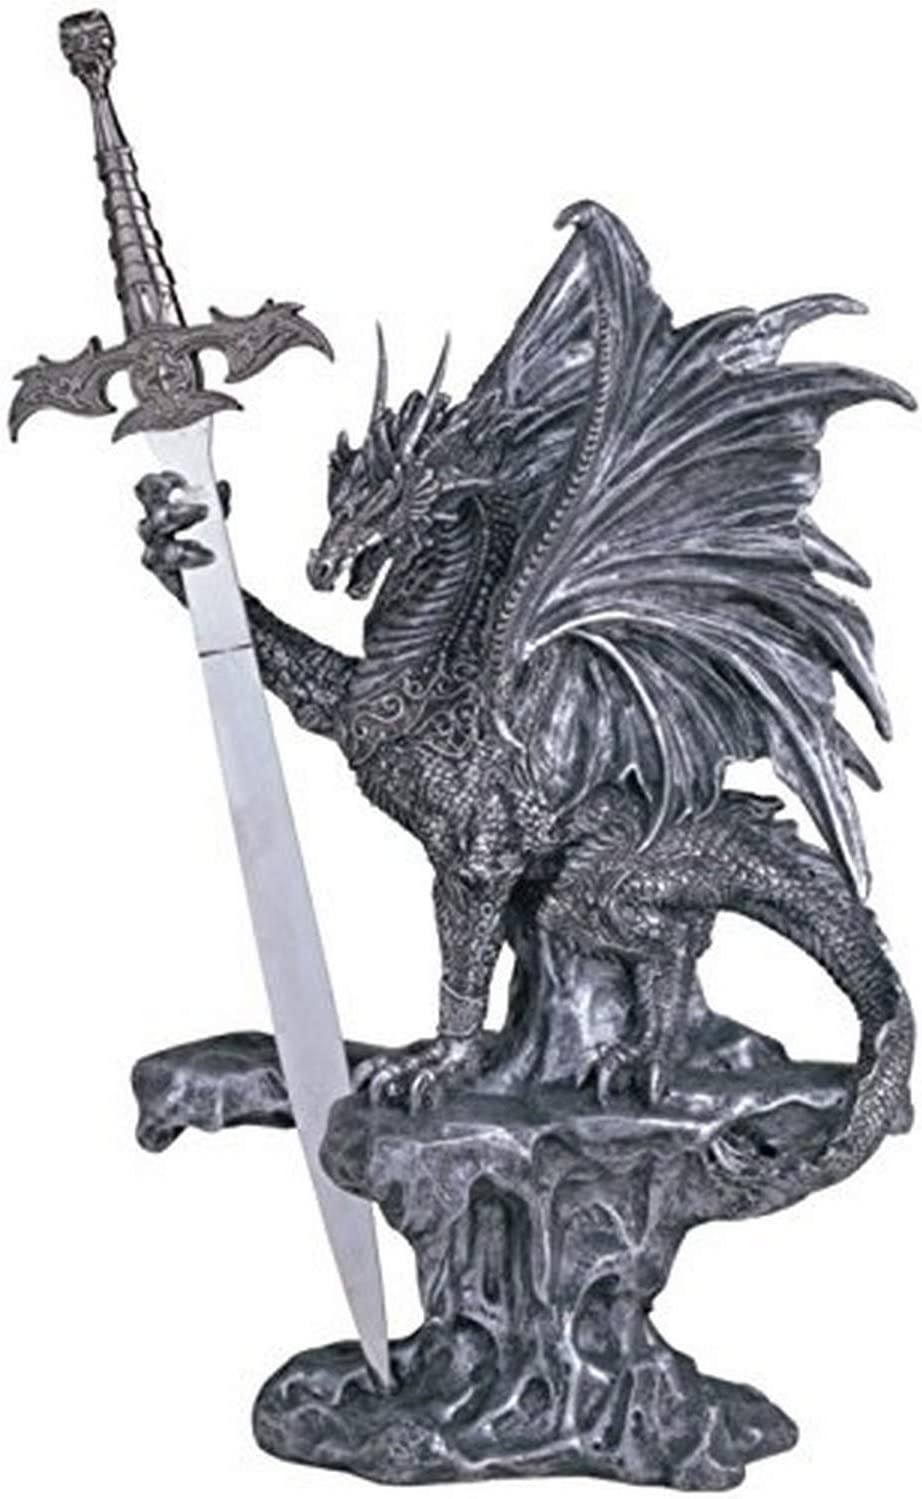 StealStreet SS-G-71340 Dragon Collection Sword with Collectible service 2021 model